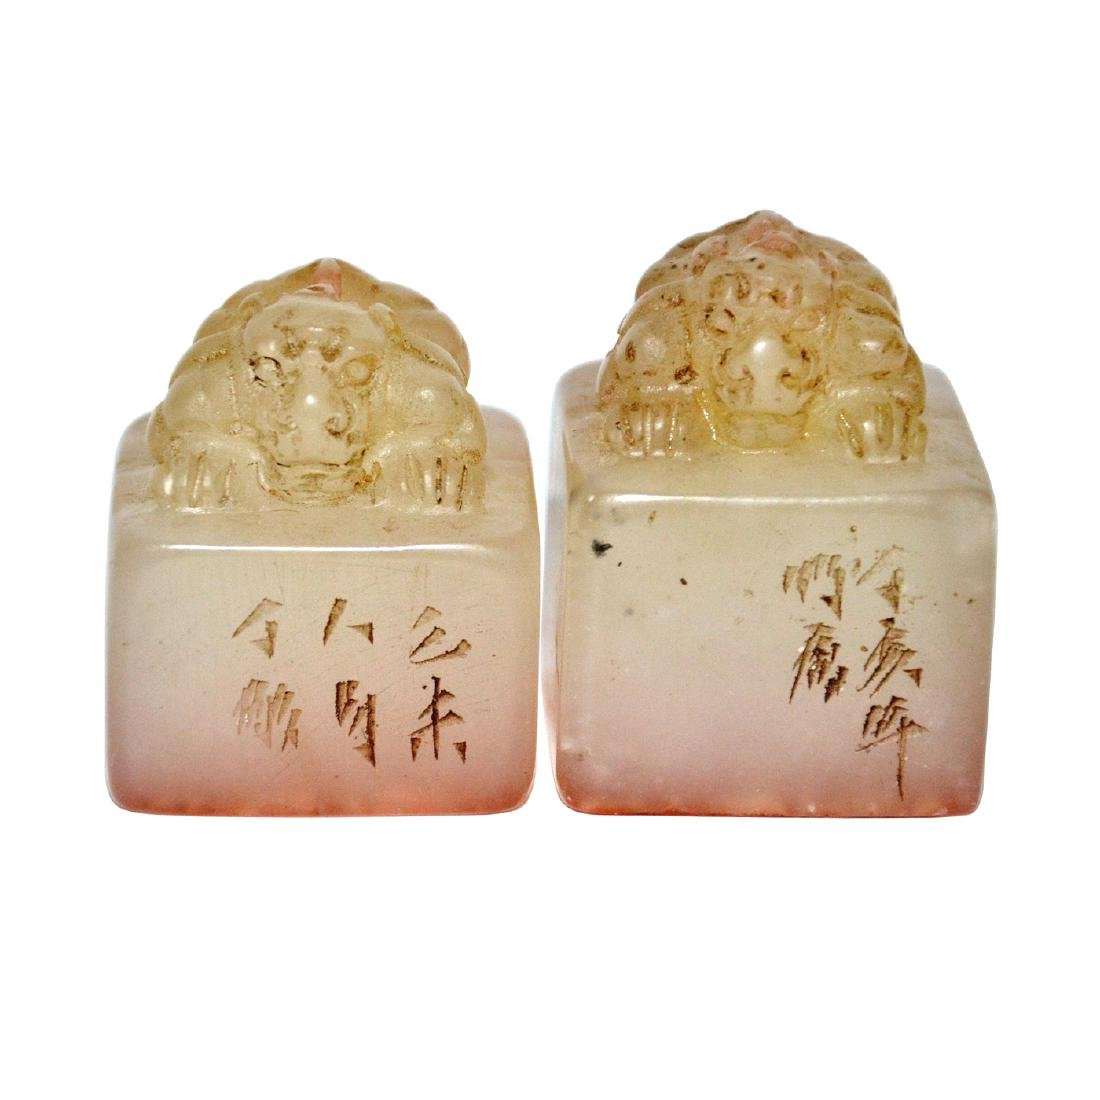 A Pair of Furong Stone Seal with Bixie Knop